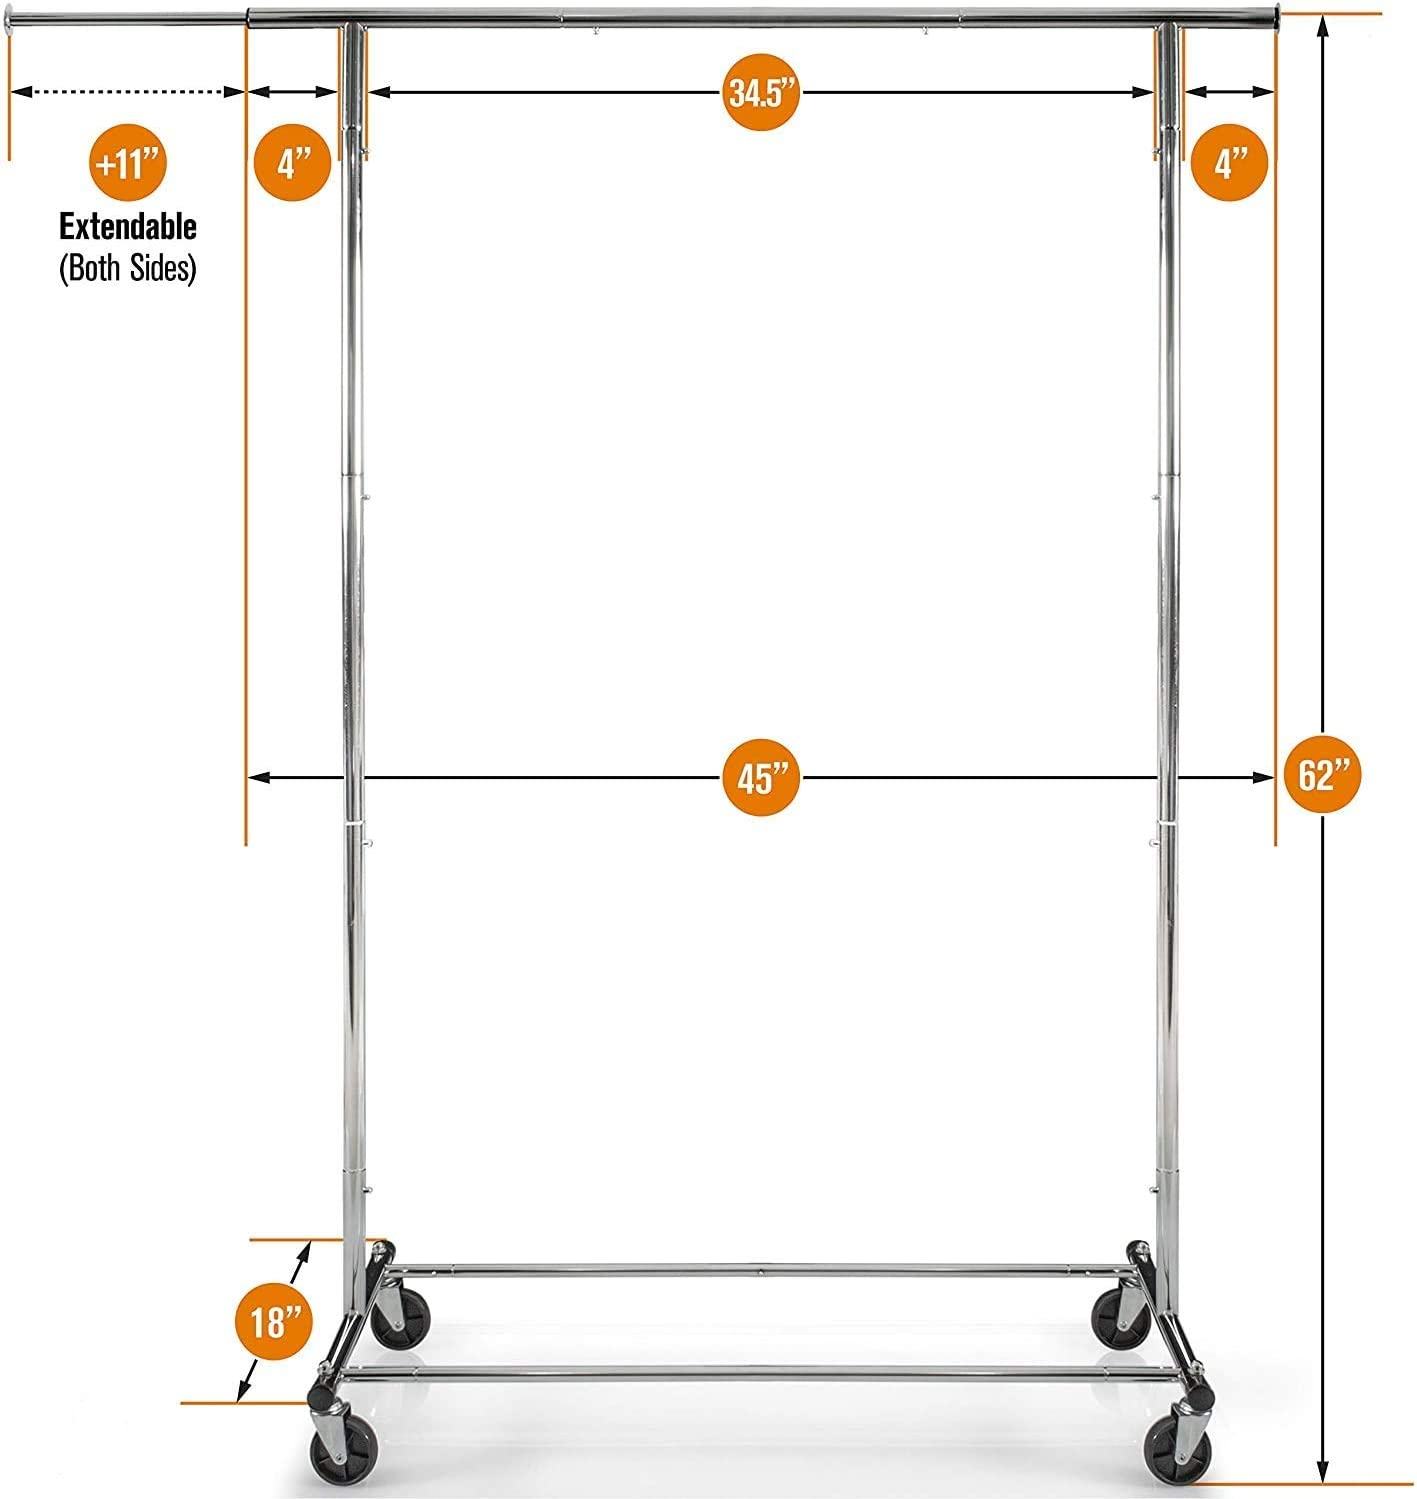 Chrome Clothing Rail 200 LBS Capacity Clothes Rail for Clothing Clothes Rack Heavy Duty Commercial Grade Garment Rack Adjustable Clothing Rack